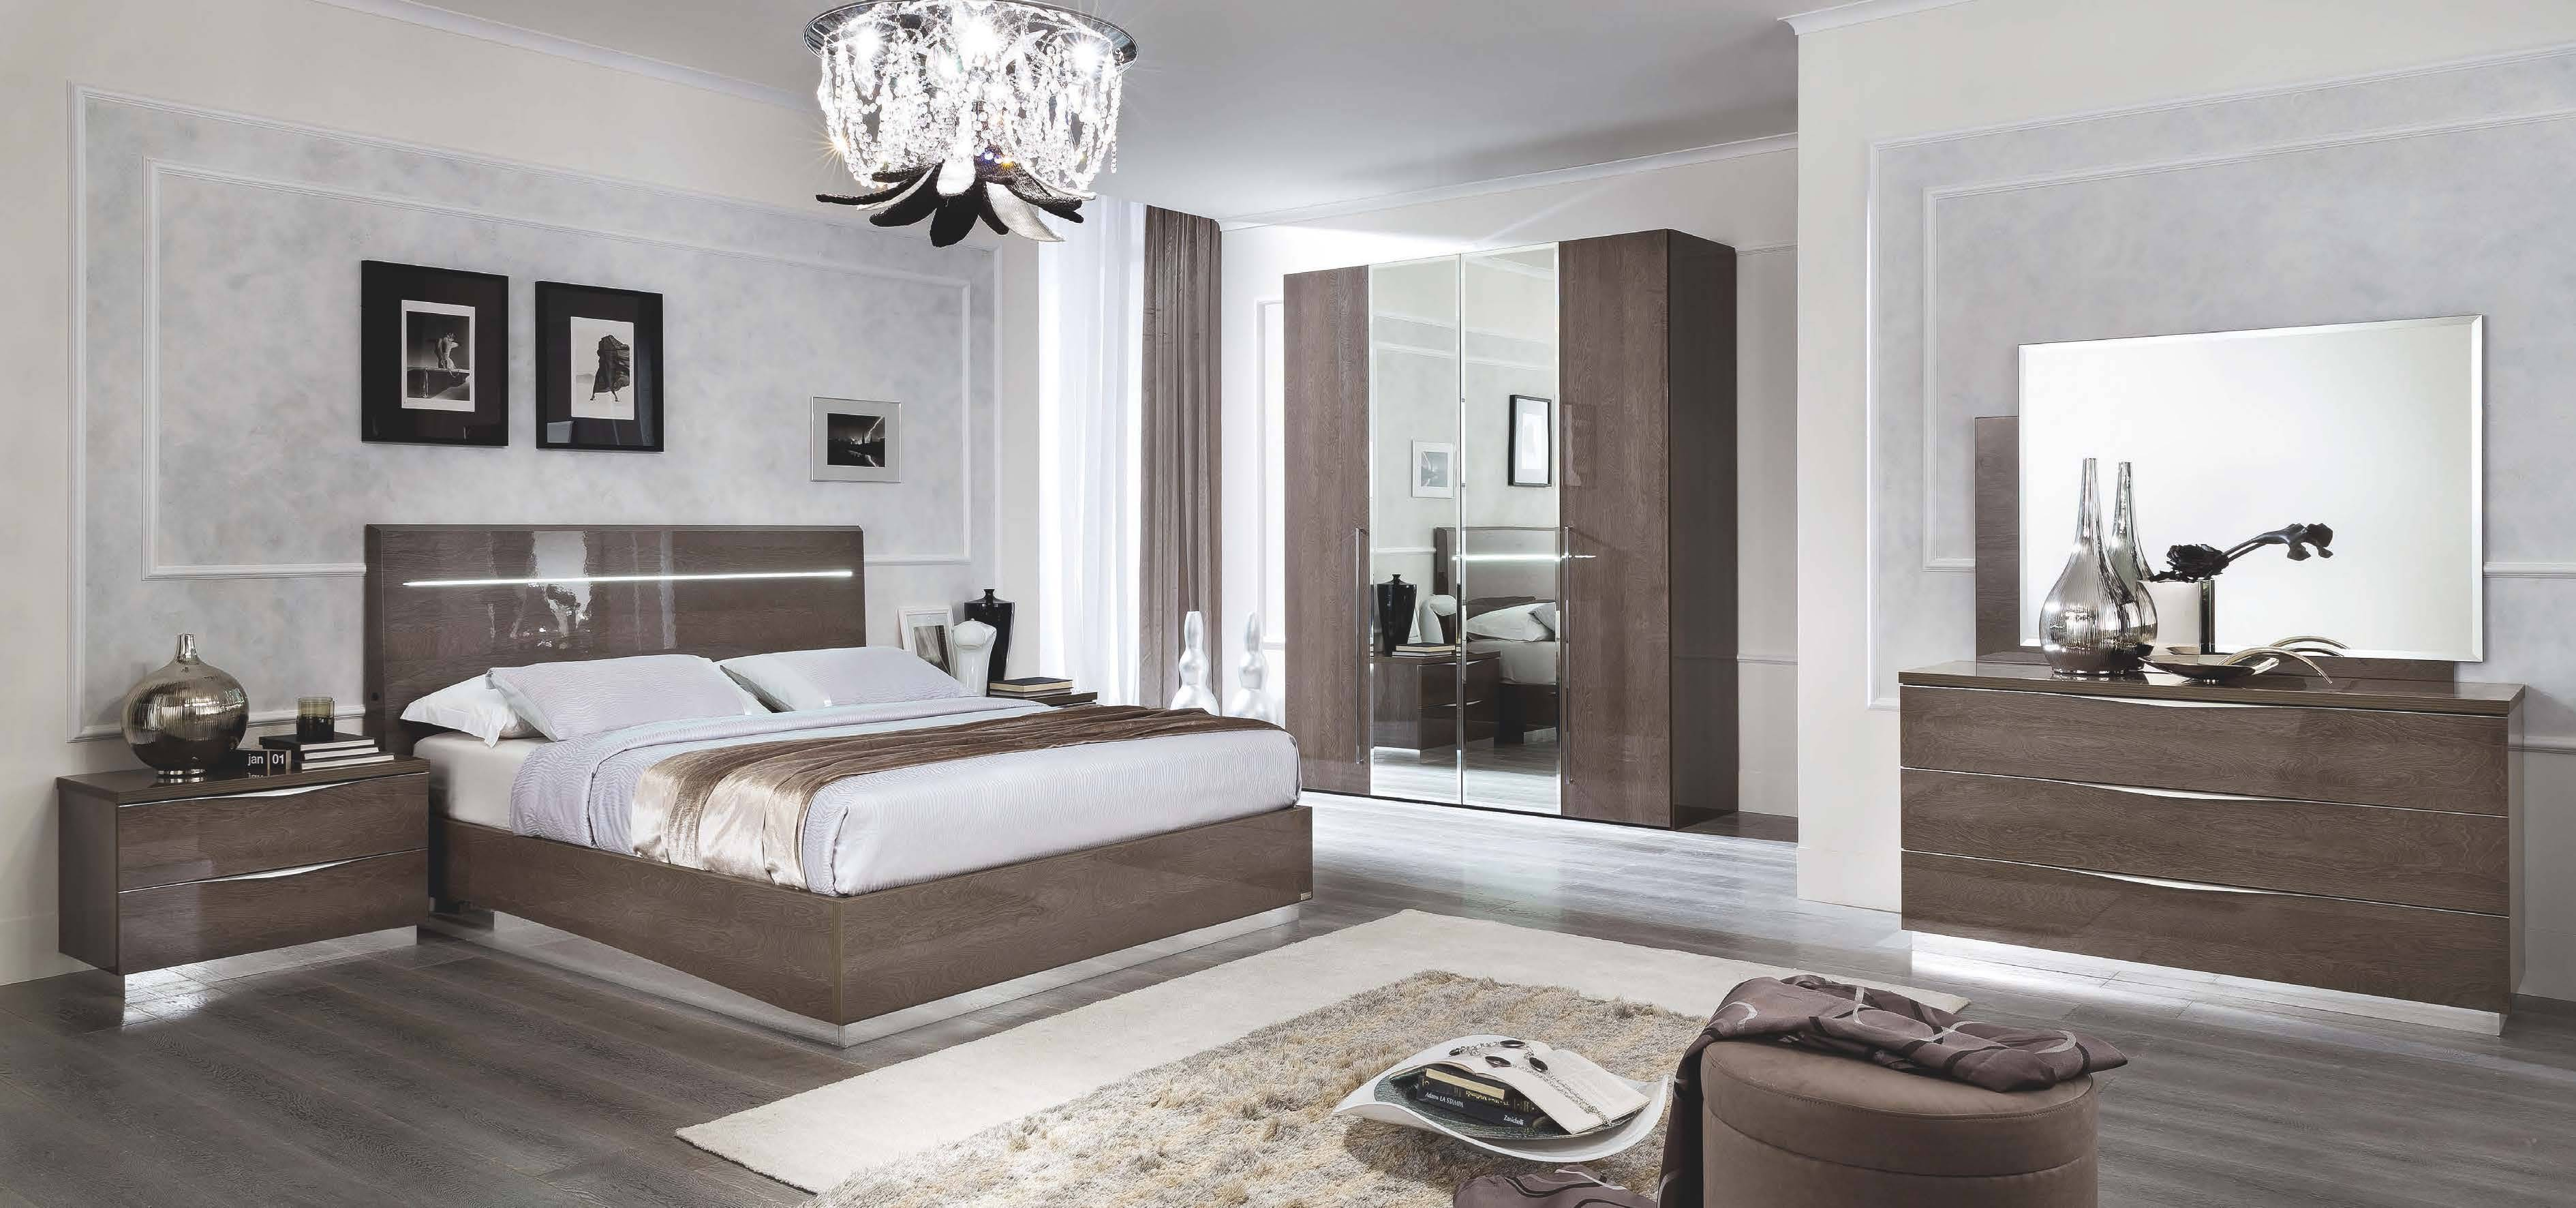 Great Italian Bedroom Set Design Ideas